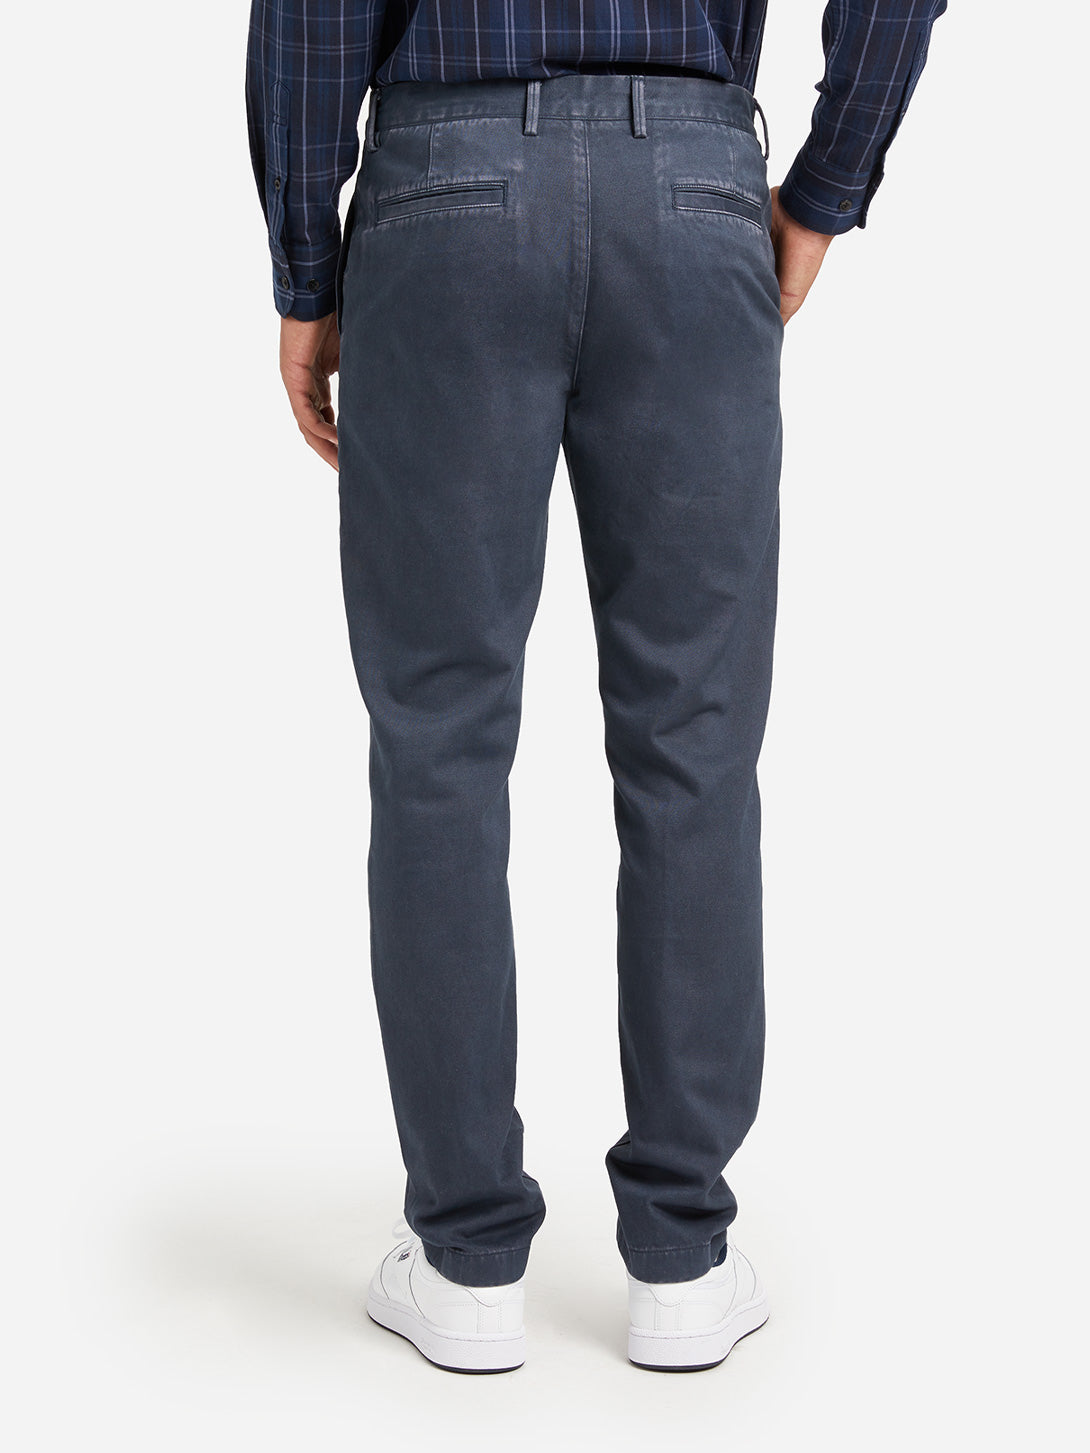 MID BLUE mens chino pants rider chino mid blue ons clothing